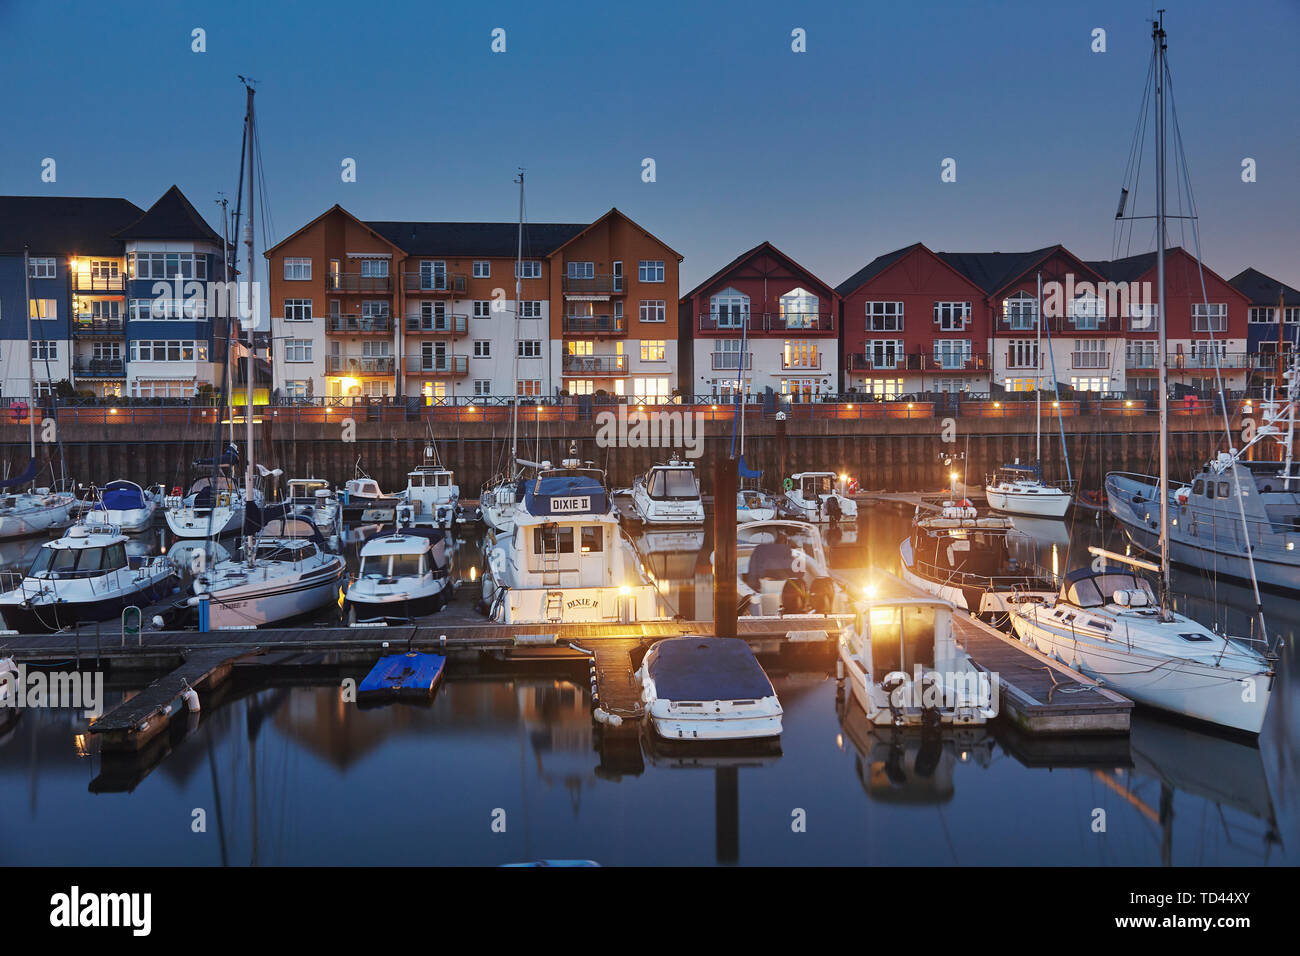 A dusk view of modern harbourside housing, beside the estuary of the River Exe, at Exmouth, Devon, England, United Kingdom, Europe - Stock Image